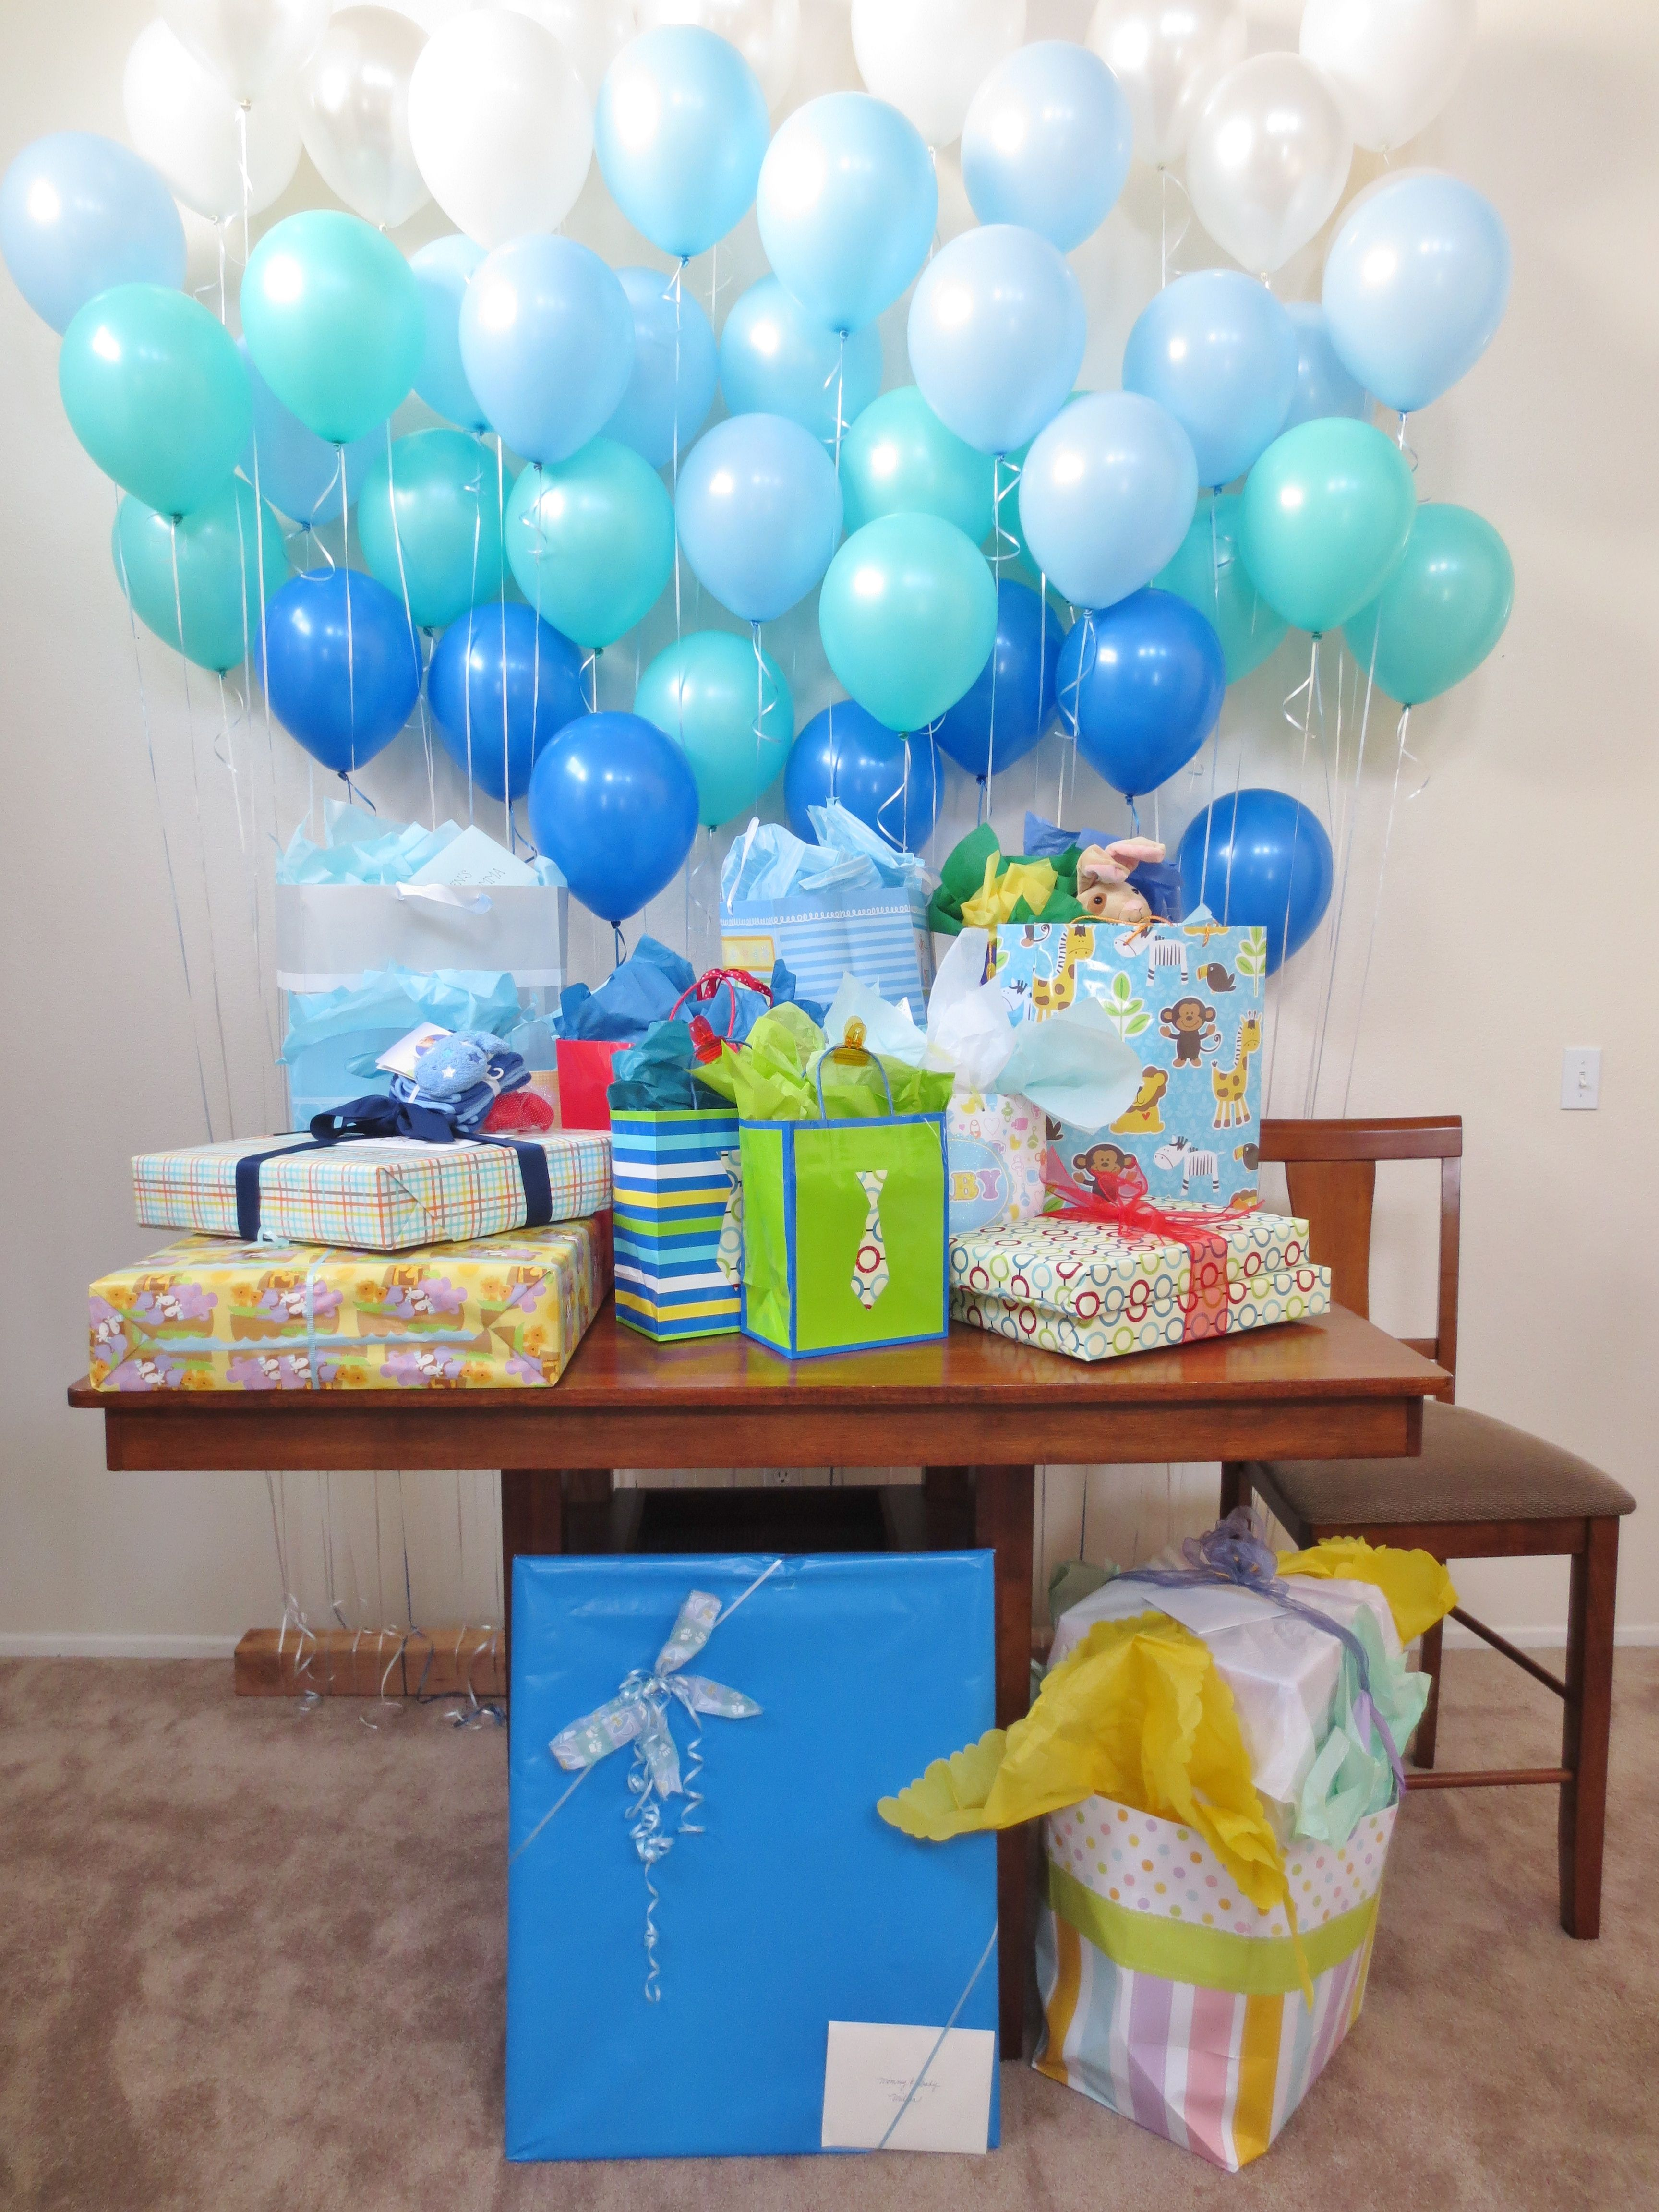 Balloon wall baby shower decorations party pinterest for Balloon baby shower decoration